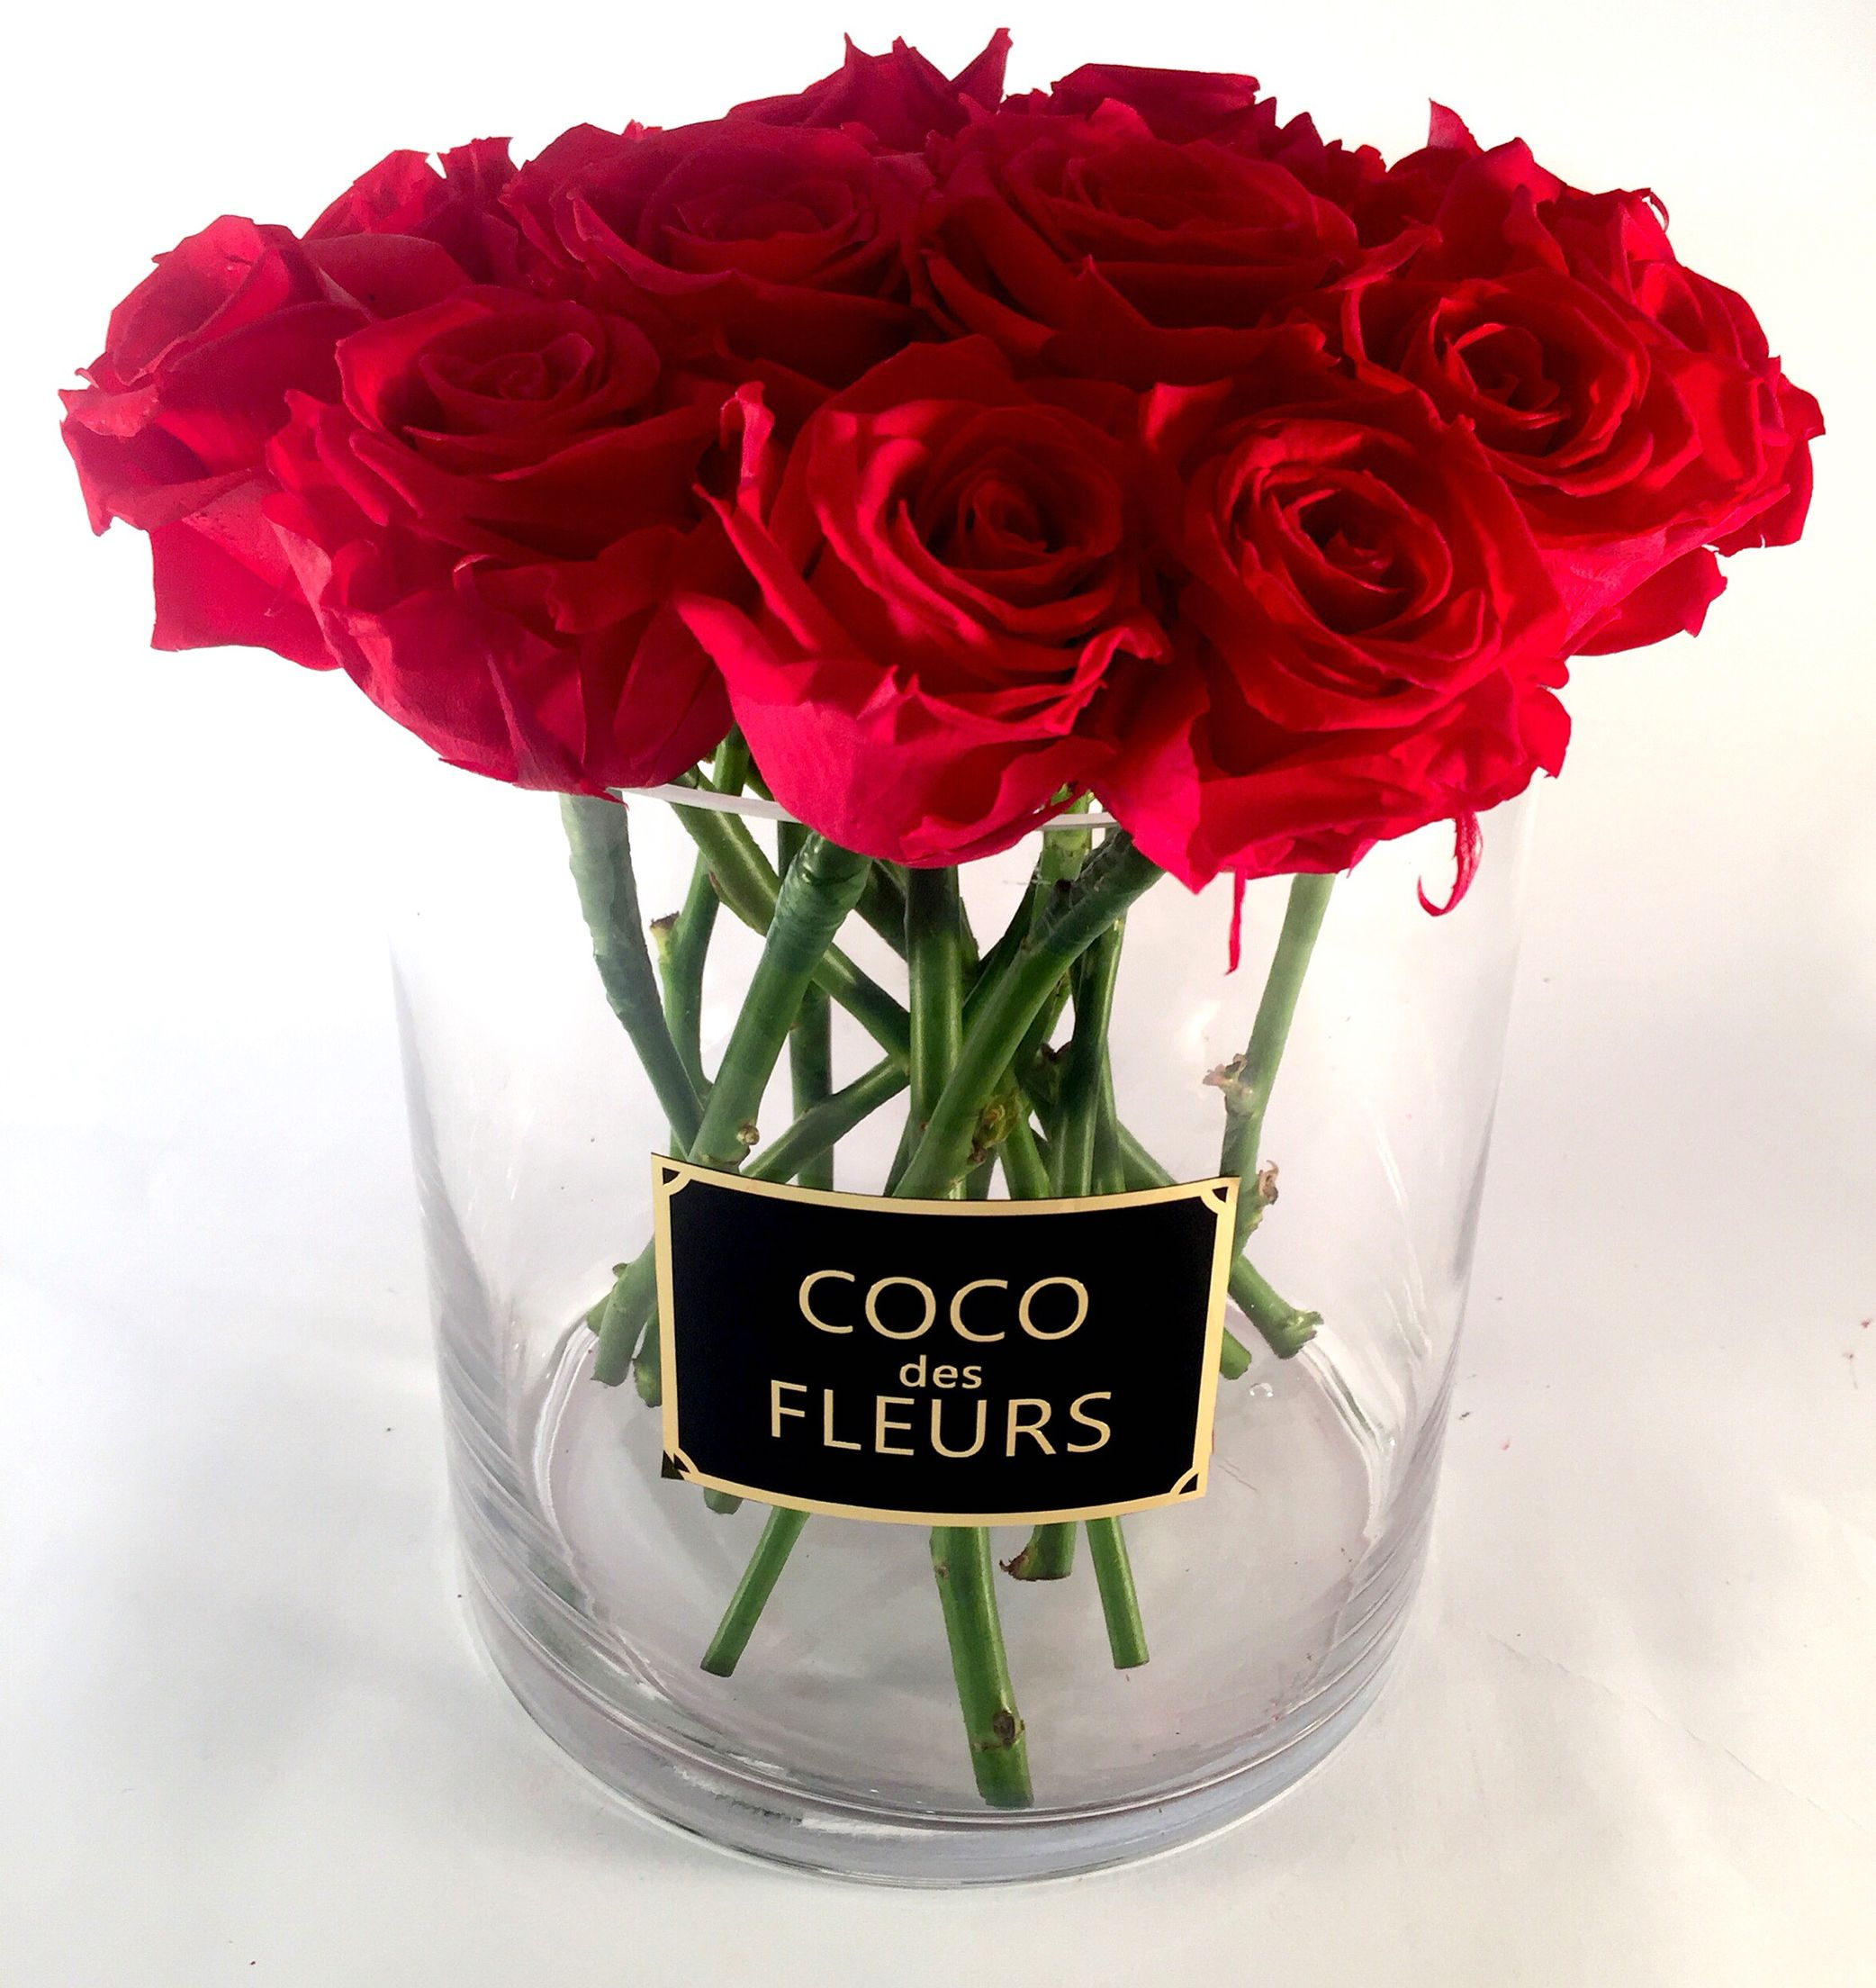 Coco Des Fleurs Real Roses Lasting All Year Preserved Rose Coco Des Fleurs Boxedroses Preservedroses Realroseslastallyear Beautifulroses Luxuryboxedroses